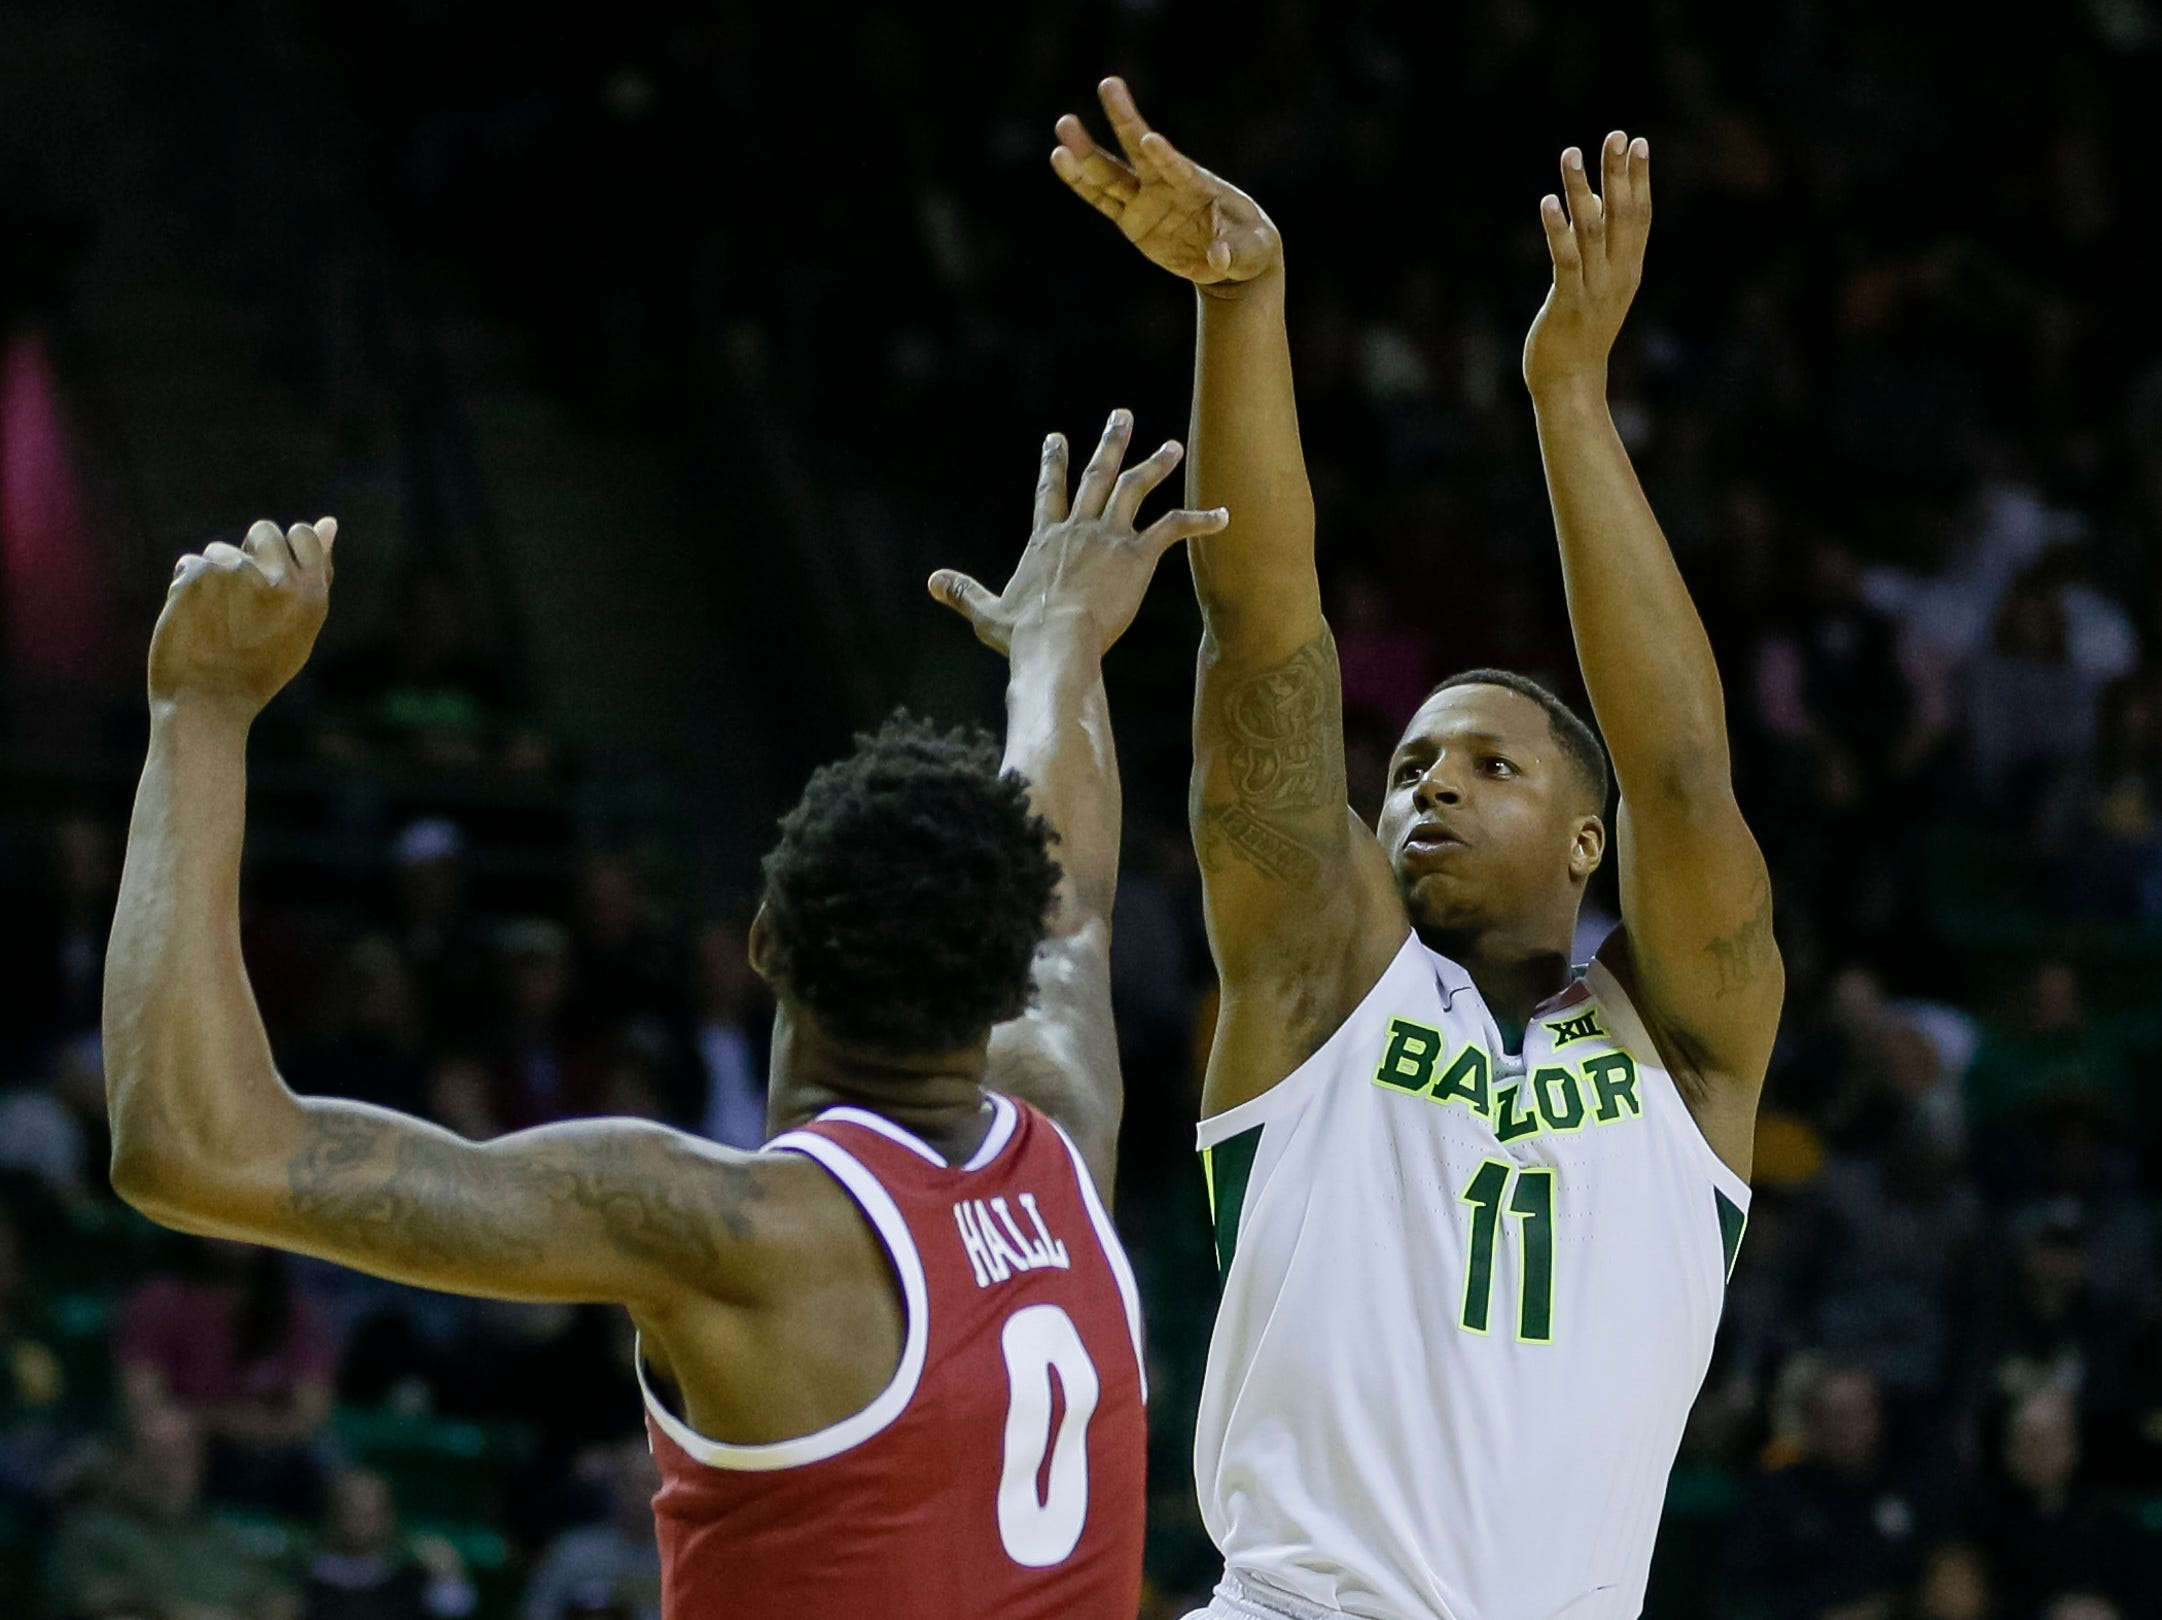 Jan 26, 2019; Waco, TX, USA; Baylor Bears guard Mark Vital (11) shoots the ball over Alabama Crimson Tide forward Donta Hall (0) during the second half at Ferrell Center. Mandatory Credit: Ray Carlin-USA TODAY Sports